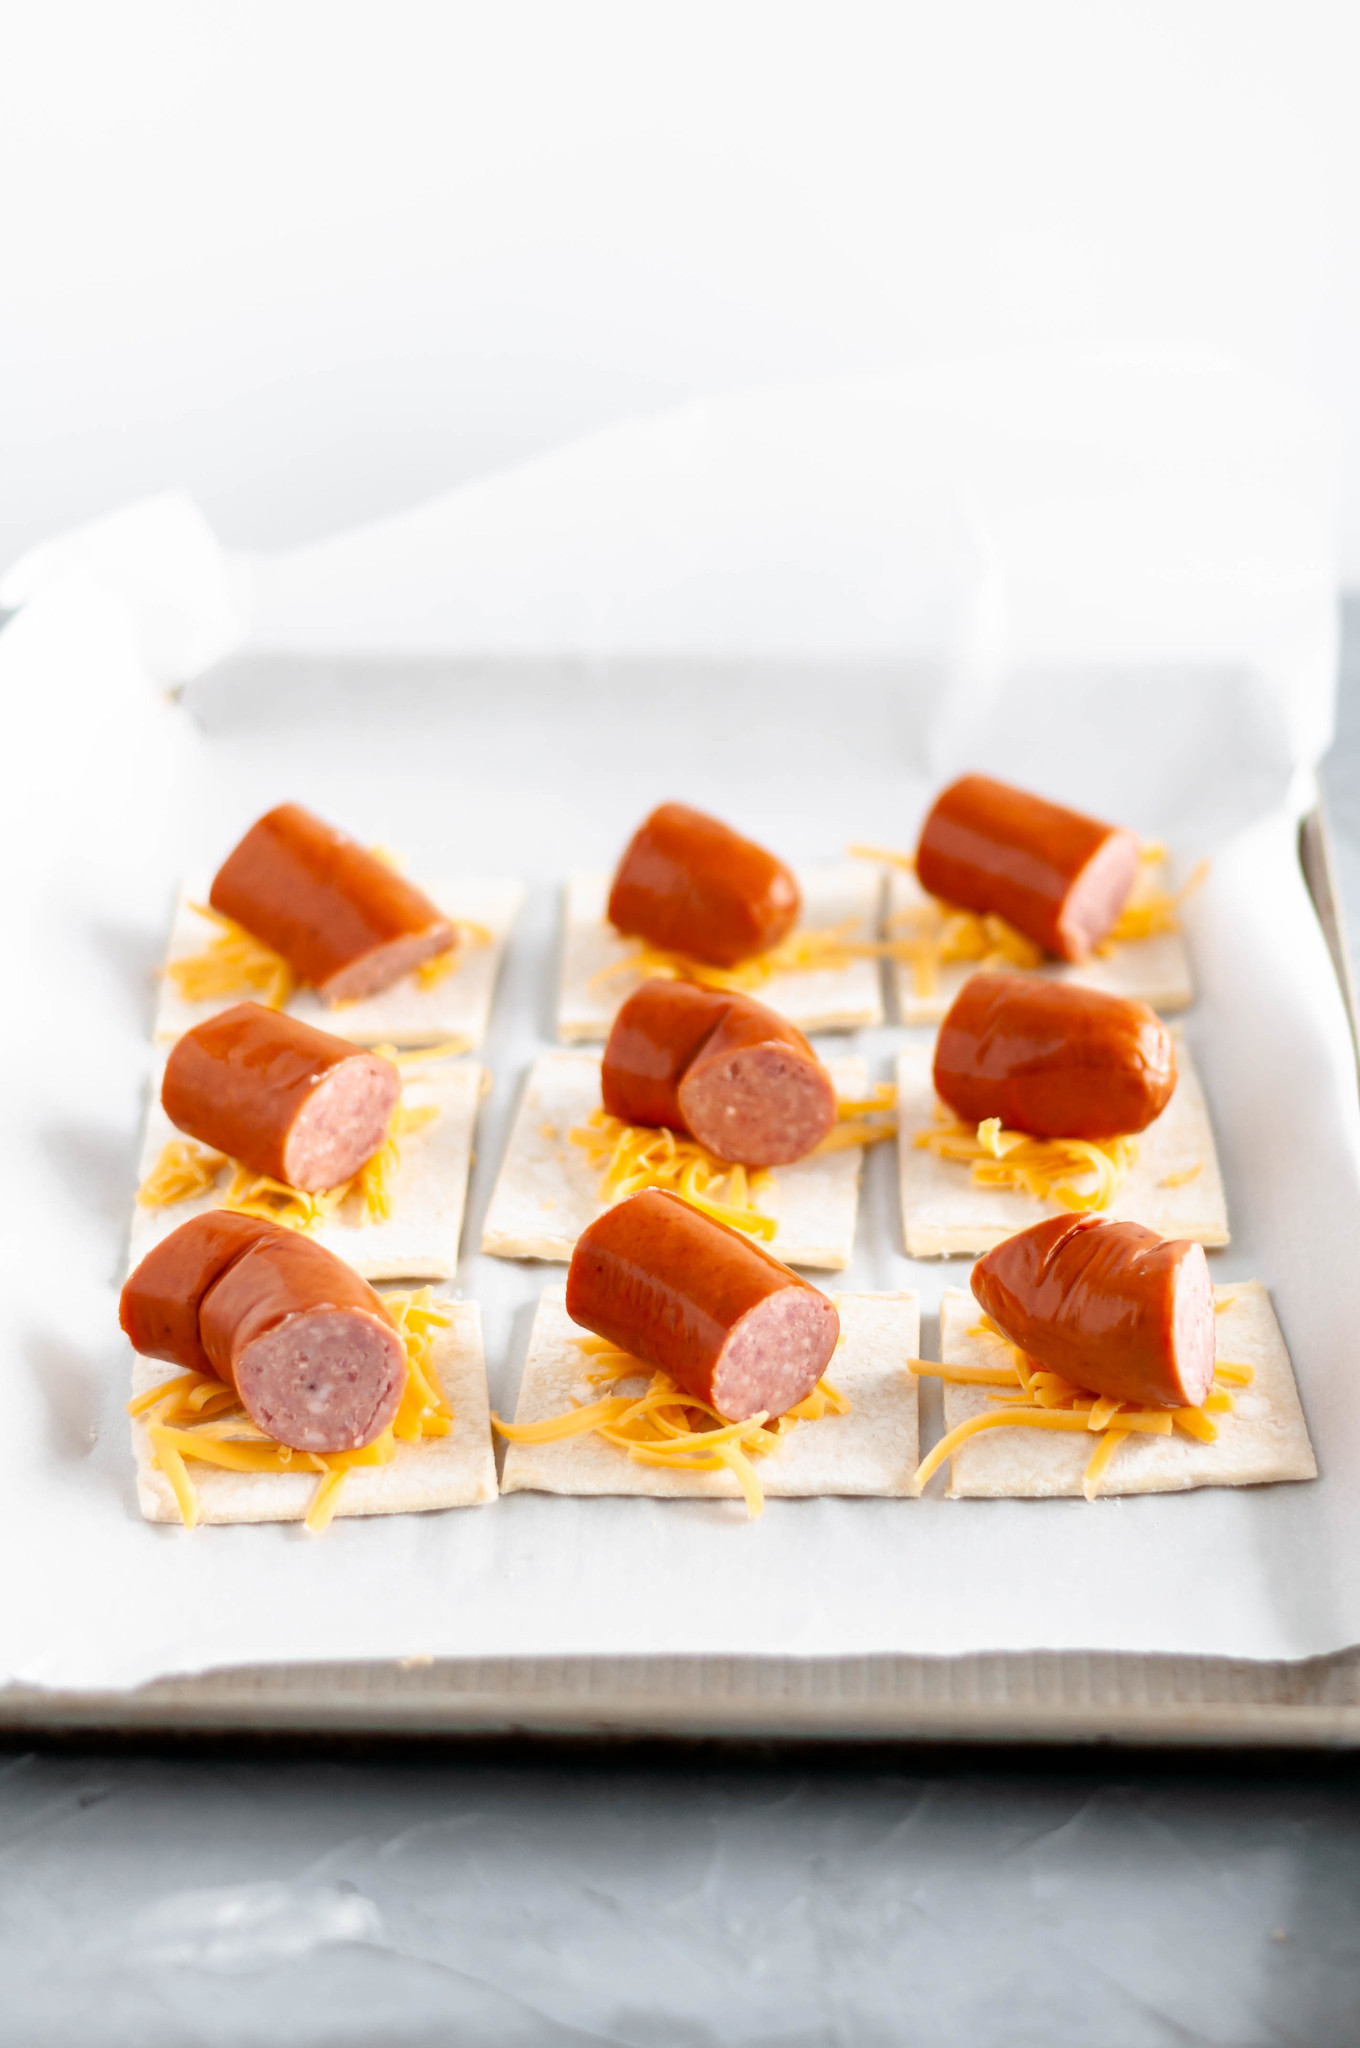 It's almost football season and that means it's time for all the football food and appetizer. Start the game with these Cheesy Pigs in a Blanket.